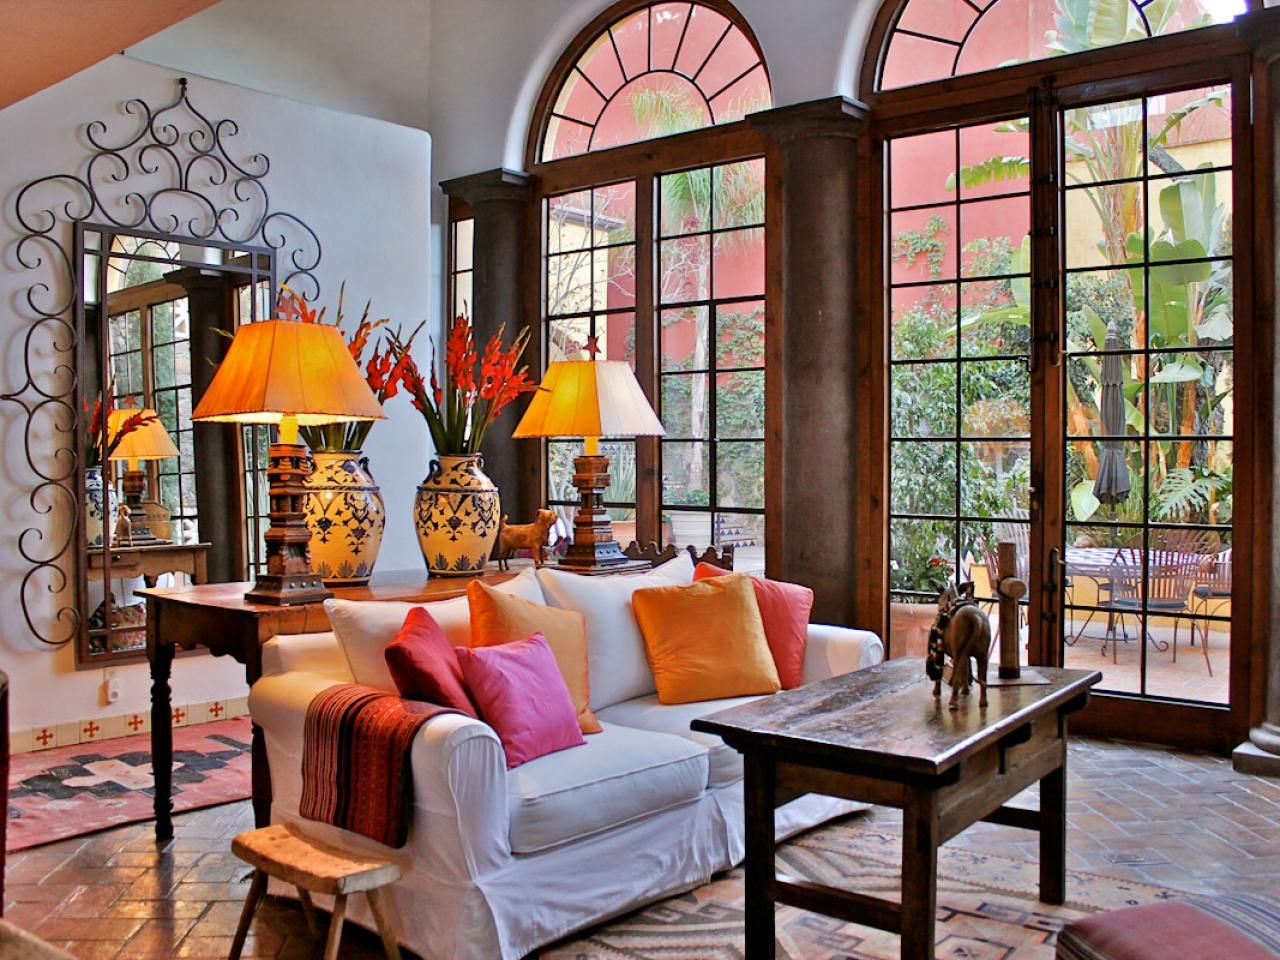 Spanish Inspired Rooms